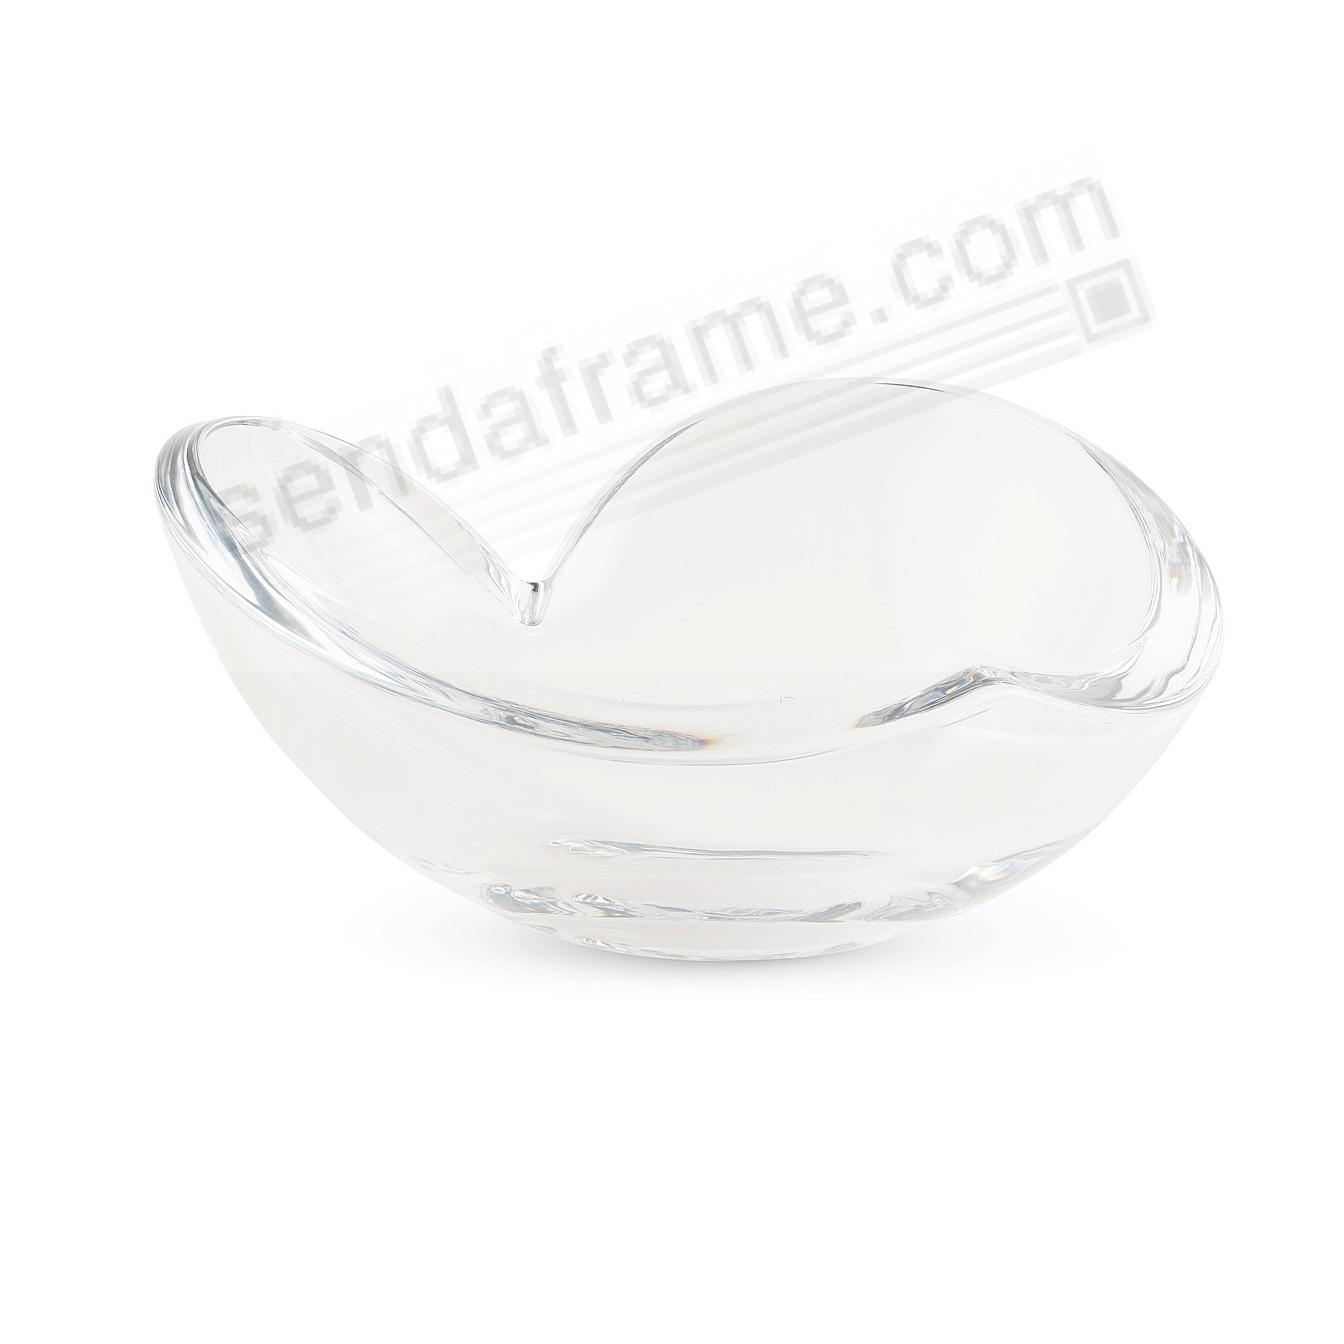 HEART BOWL (LARGE) crafted by Nambe®